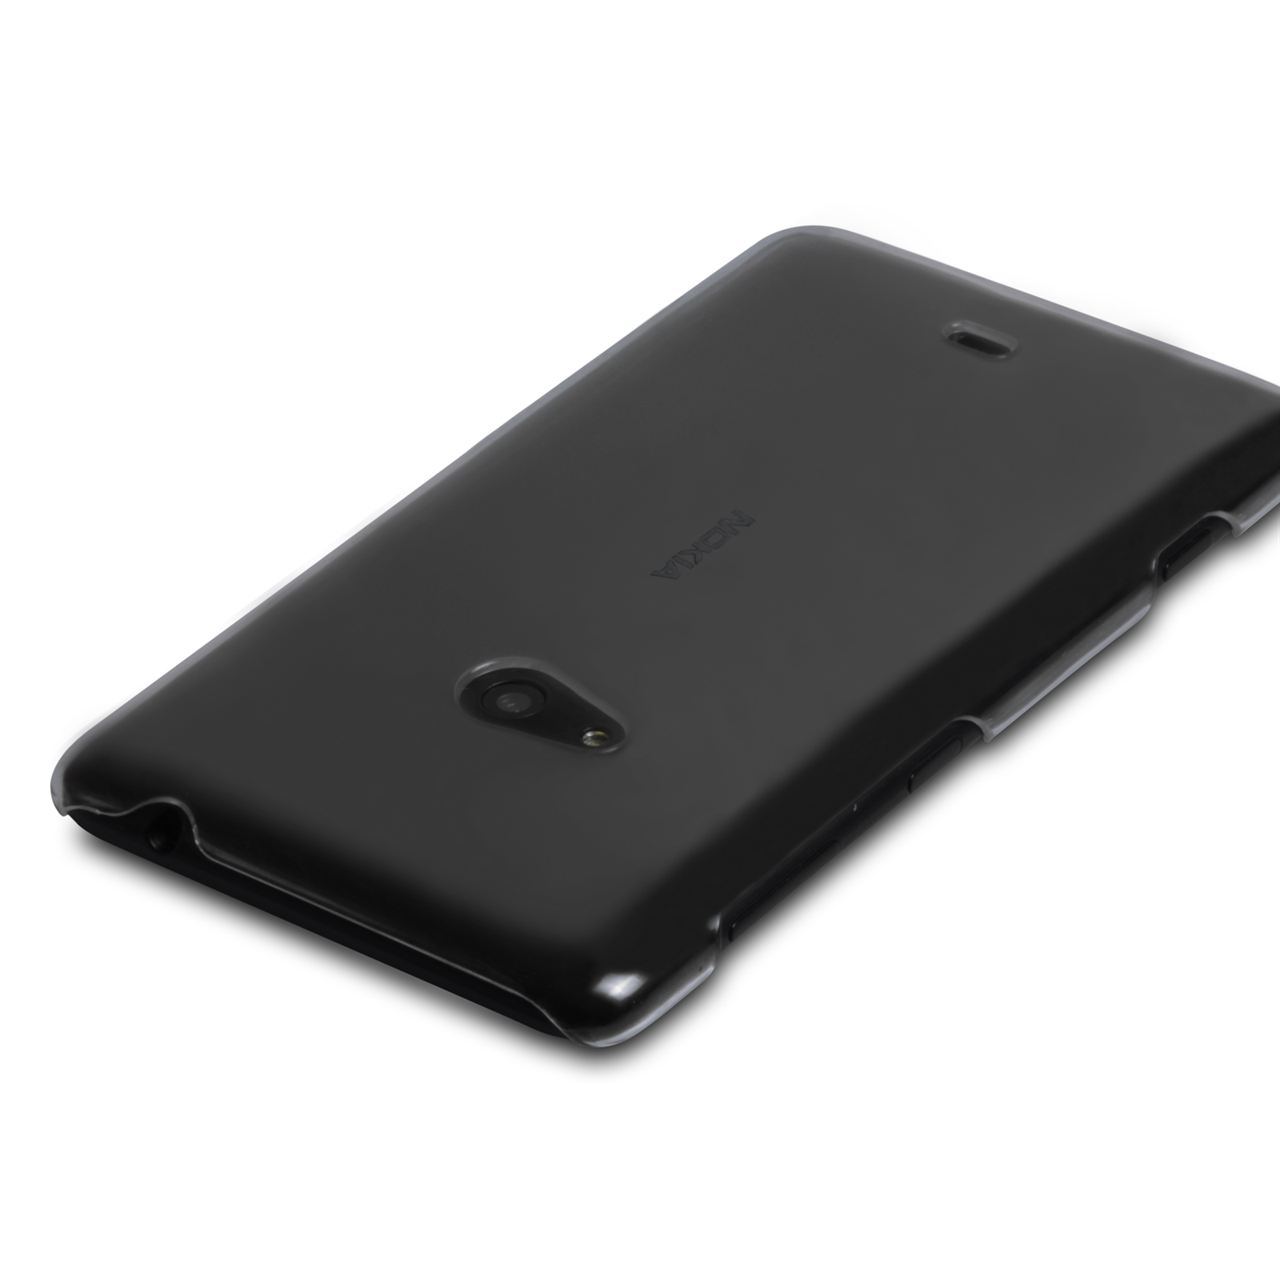 YouSave Accessories Nokia Lumia 625 Hard Case - Crystal Clear